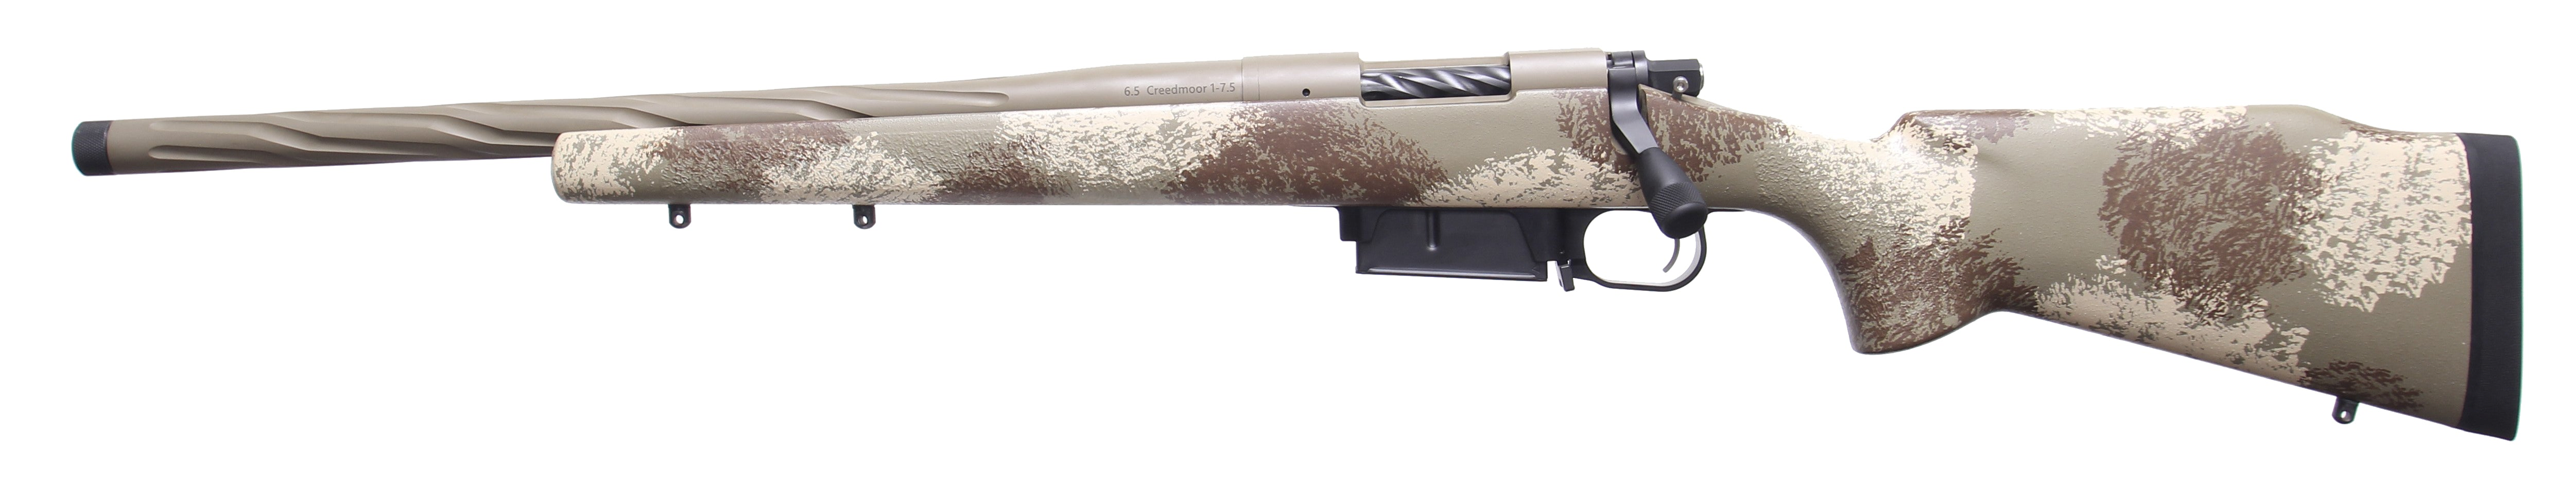 APR Custom 6.5 Creedmoor Left Handed